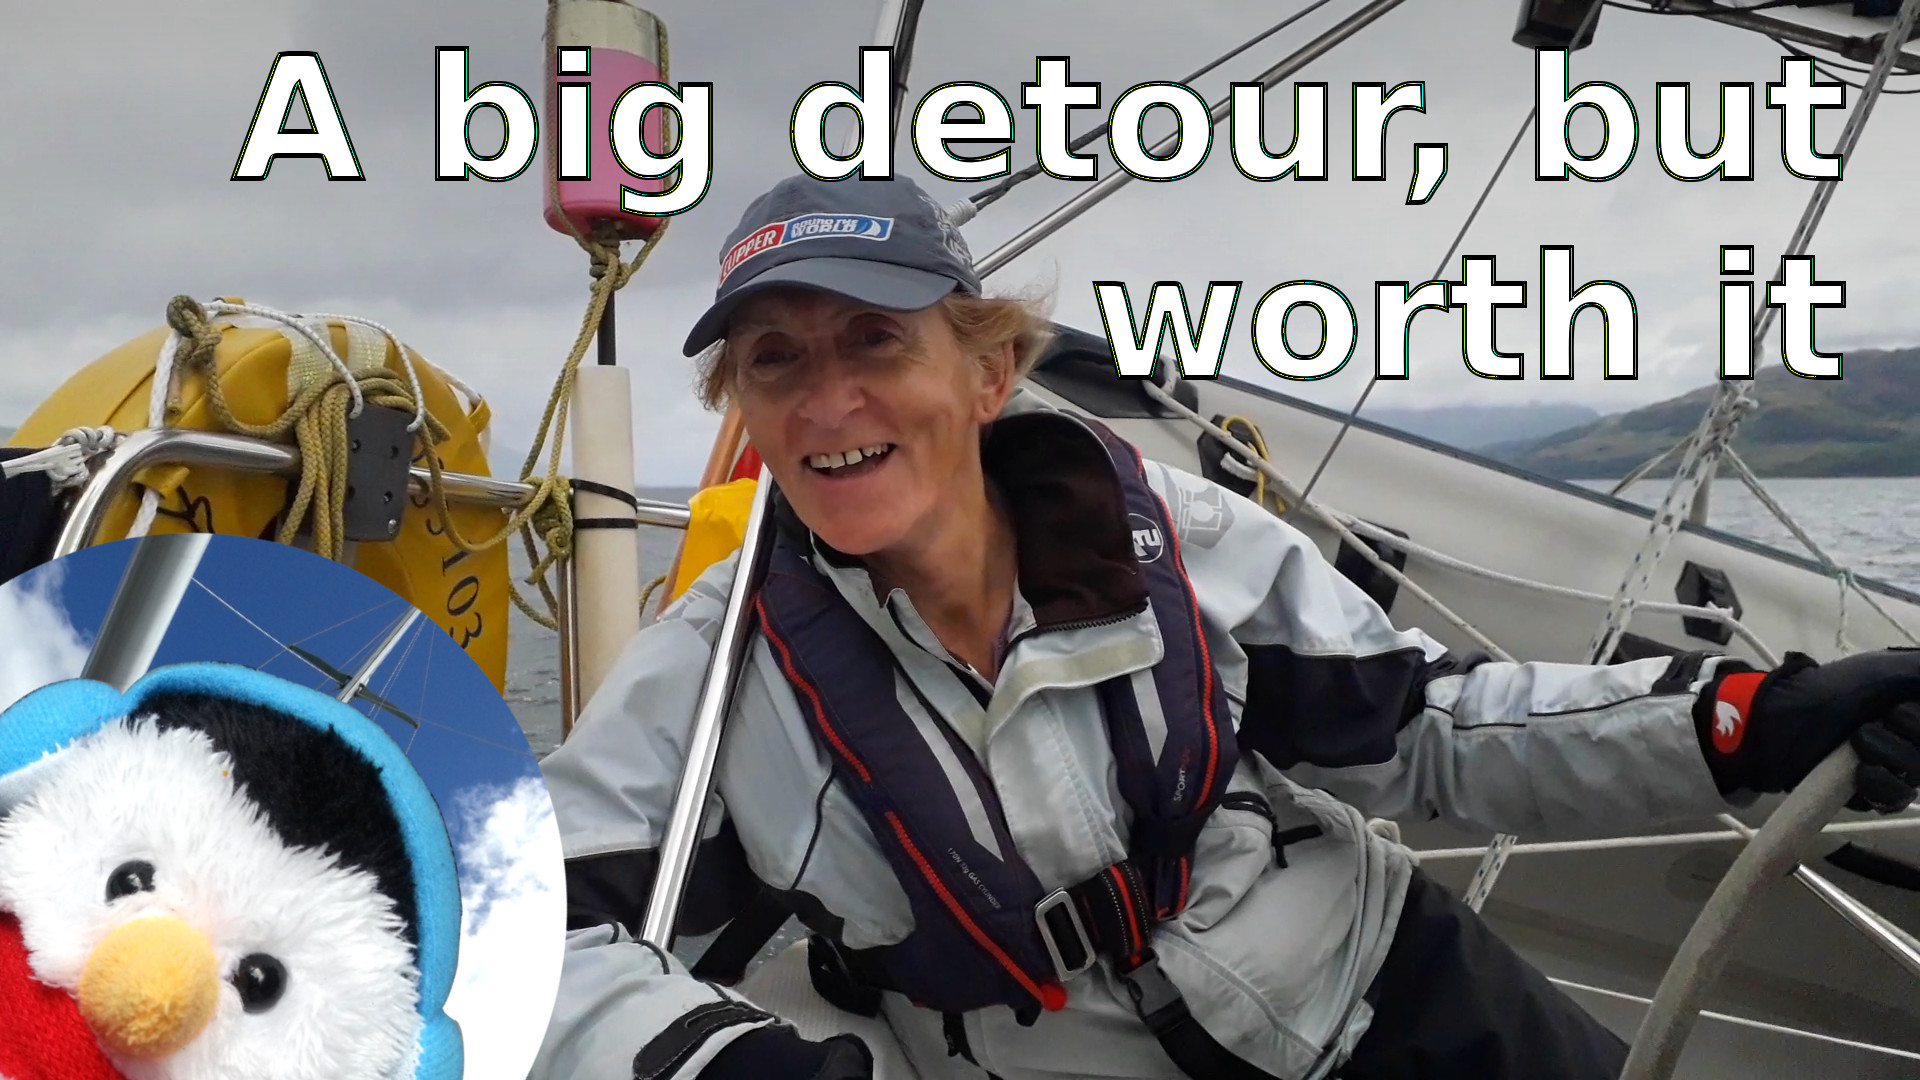 """Watch our """"A big detour, but worth it"""" video and add comments etc."""